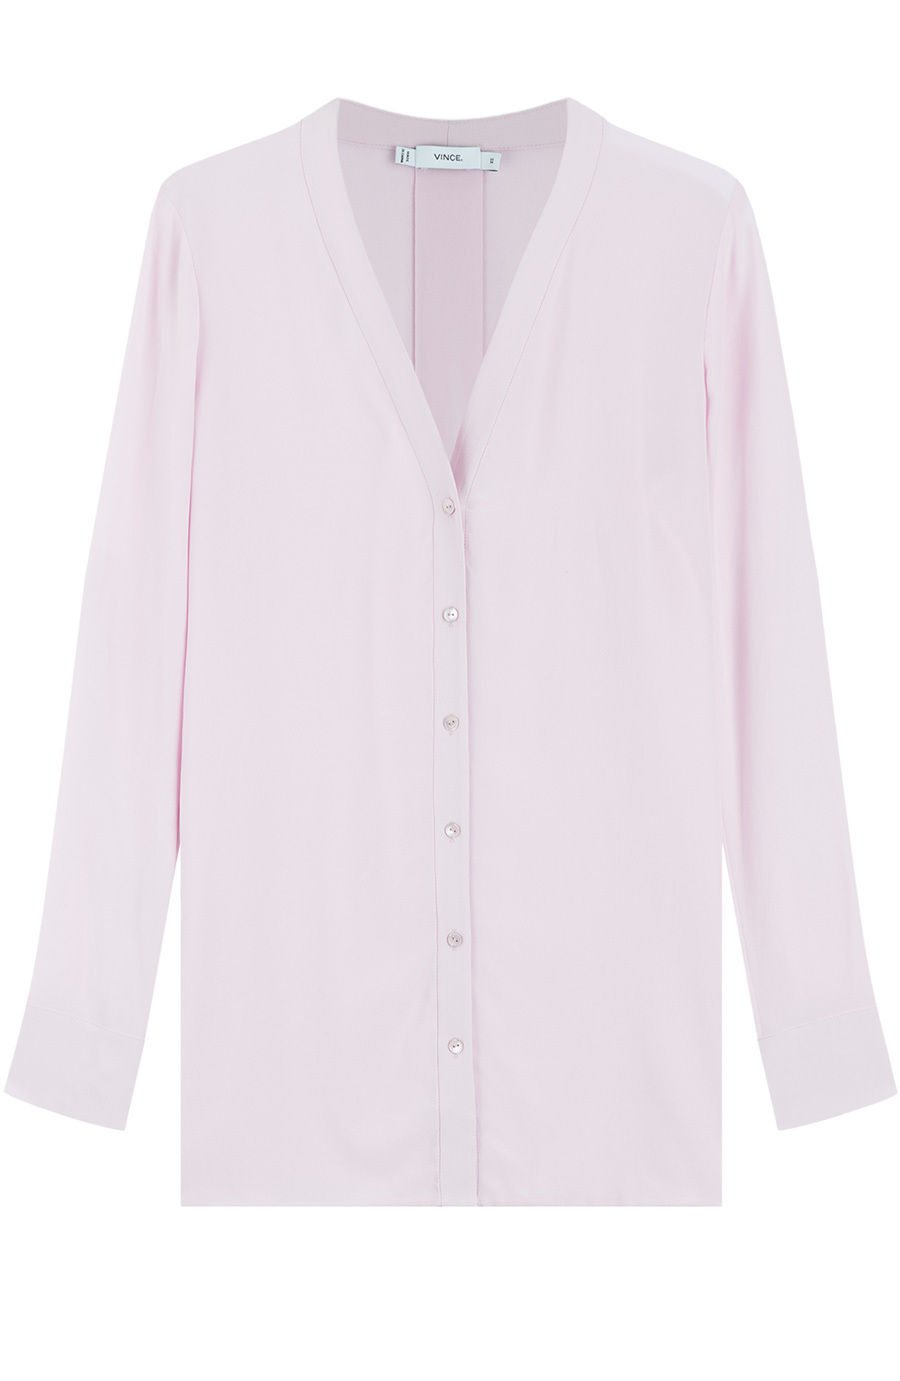 Silk Blouse Rose - neckline: v-neck; pattern: plain; length: below the bottom; style: blouse; predominant colour: blush; occasions: work, creative work; fibres: silk - 100%; fit: straight cut; back detail: longer hem at back than at front; sleeve length: long sleeve; sleeve style: standard; texture group: silky - light; pattern type: fabric; season: a/w 2015; trends: pink aw 15; wardrobe: basic